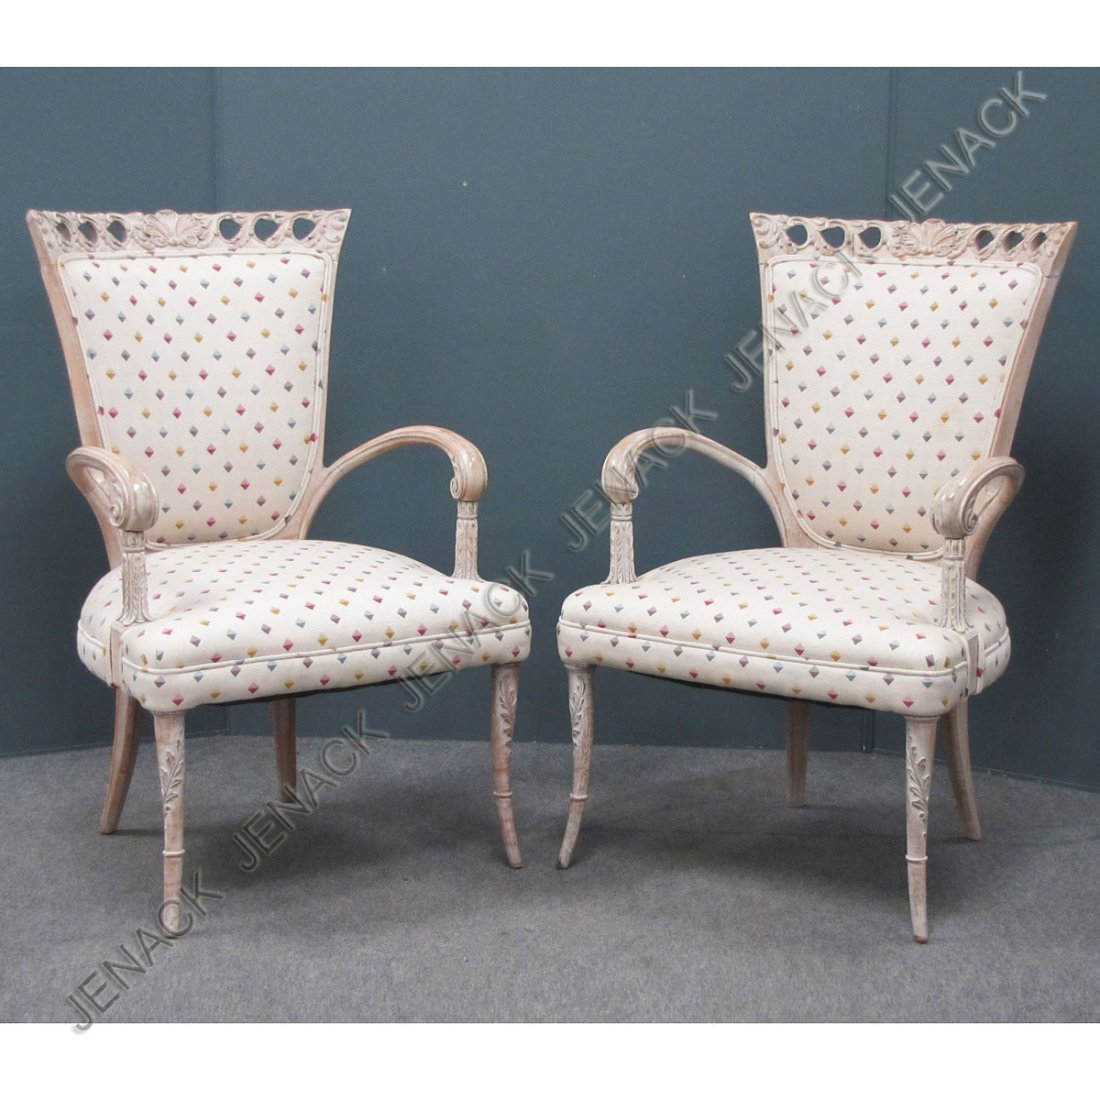 188: PAIR FRENCH STYLE CARVED AND LIMED ARMCHAIRS